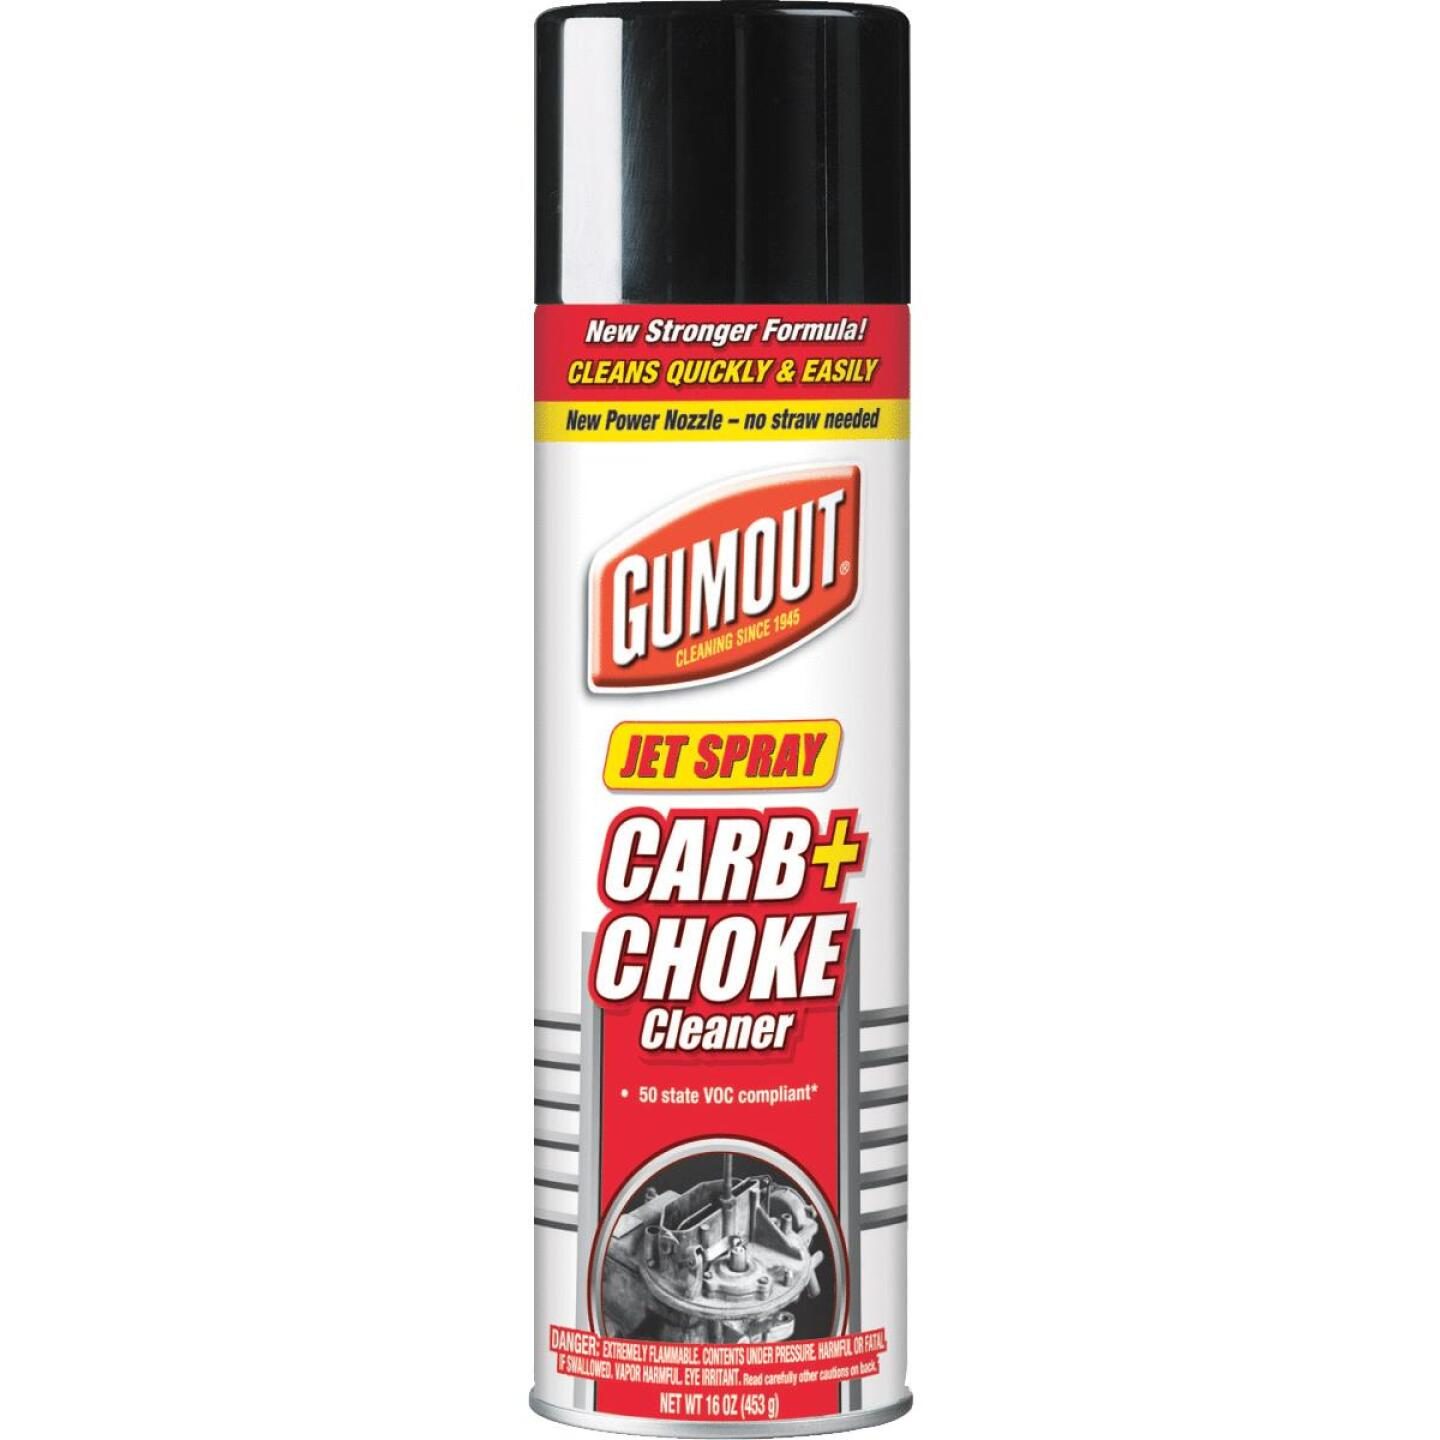 Gumout 16 Oz Aerosol Carburetor Cleaner Image 1